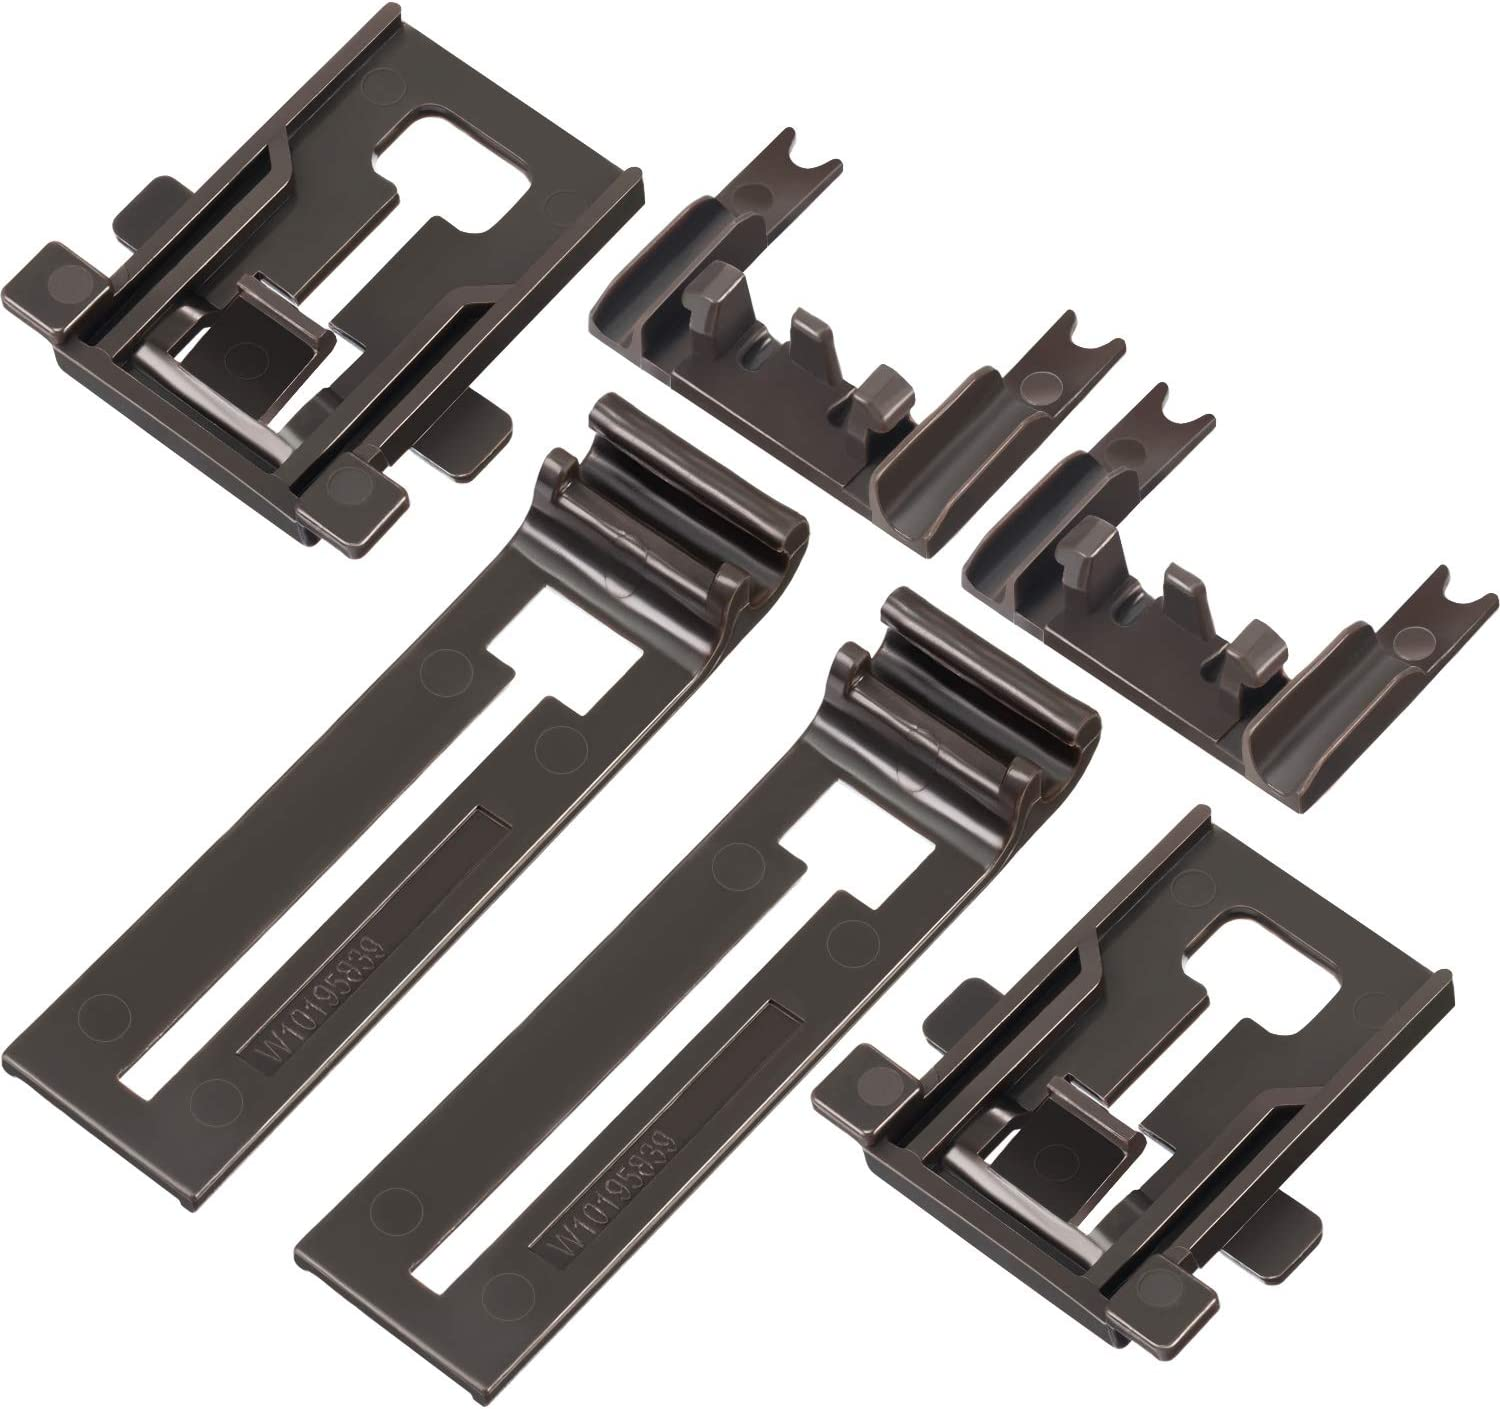 Hotop 6 Pieces Dishwasher Replacements Includes W10195839 Dishwasher Rack Adjuster W10195840 Dishwasher Positioner W10250160 Adjuster Arm Clip-lock Compatible with Kenmore and More